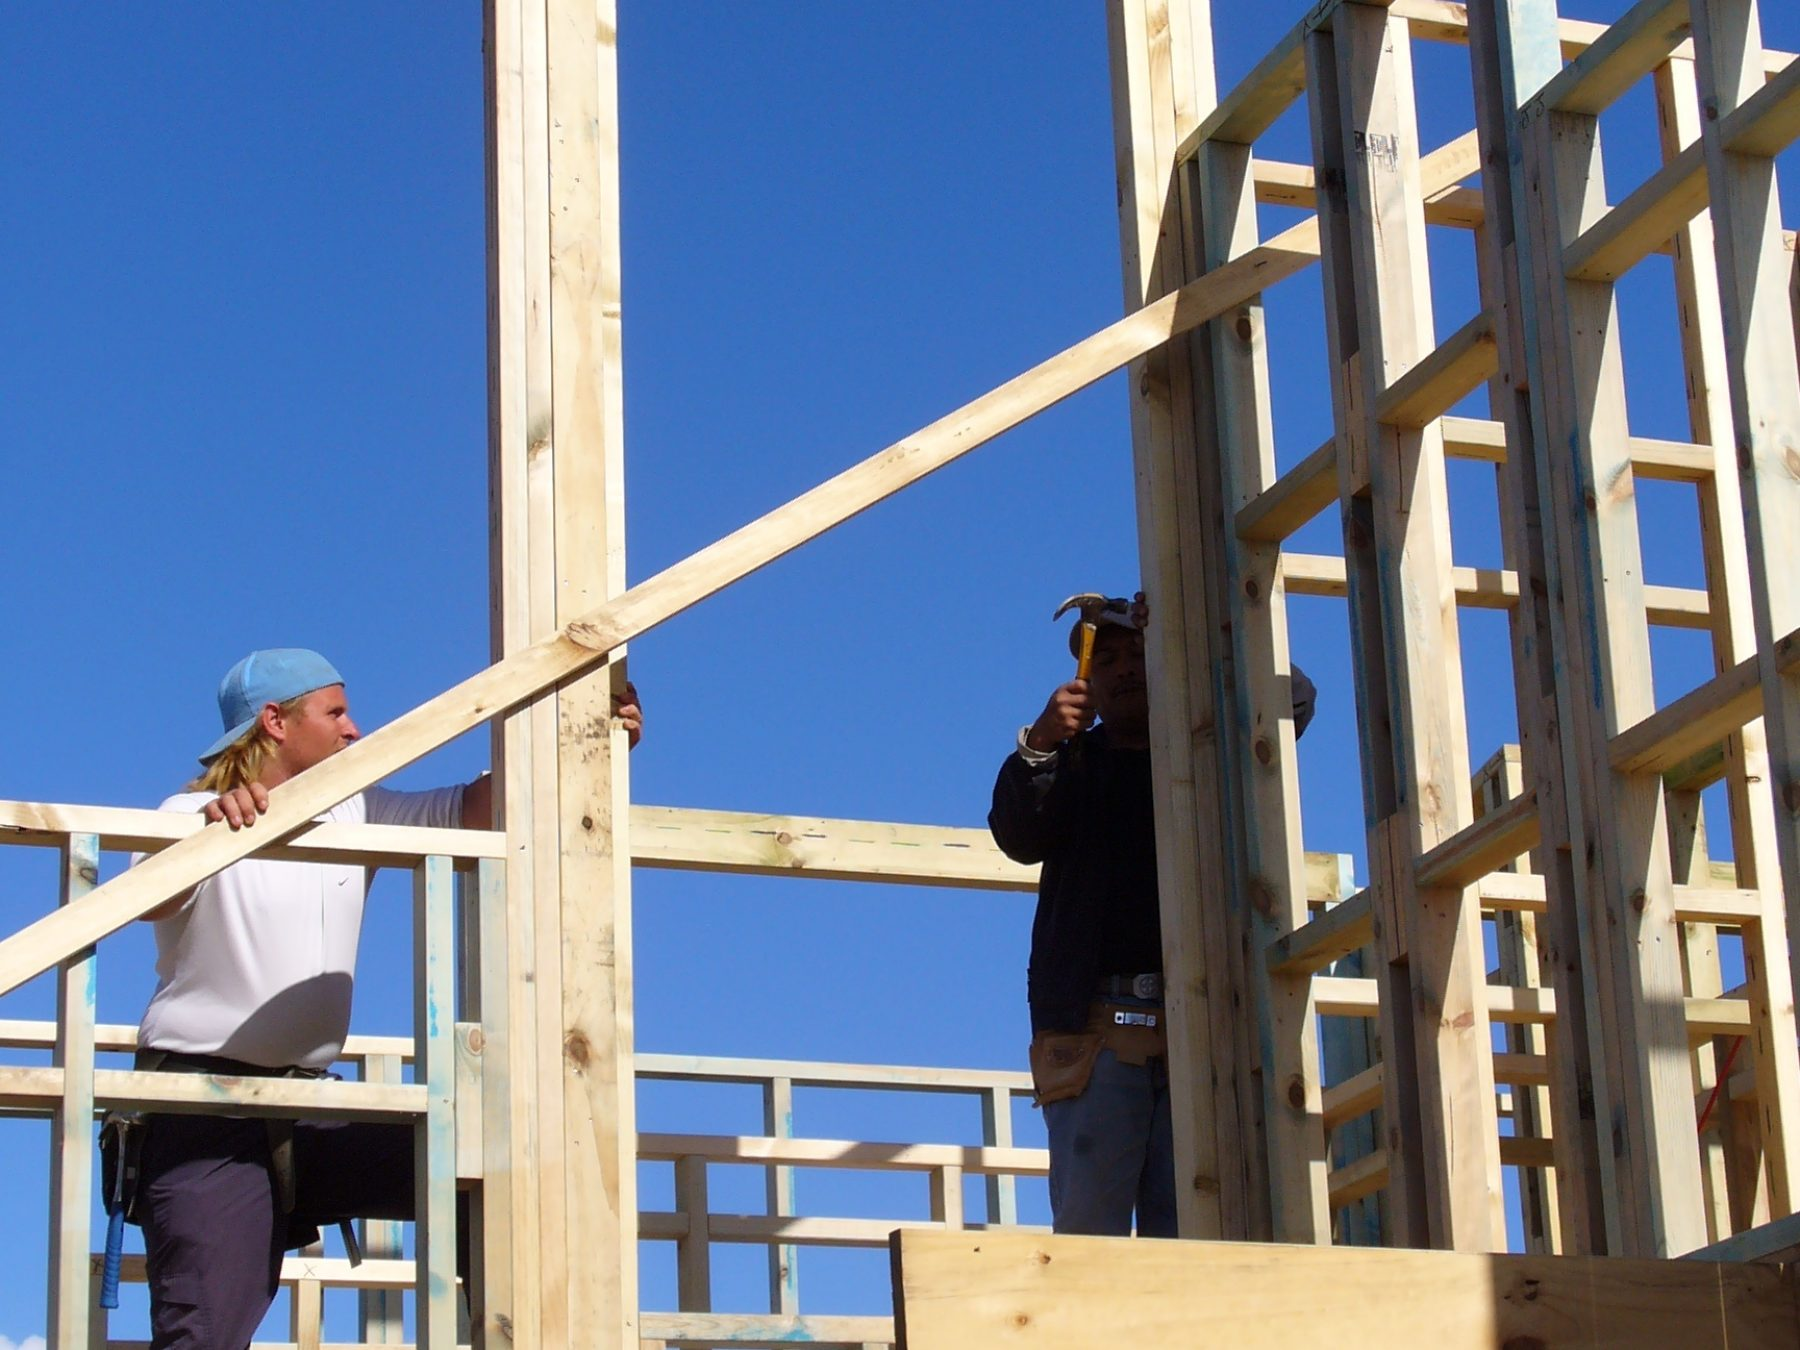 Shortage building materials and tradies